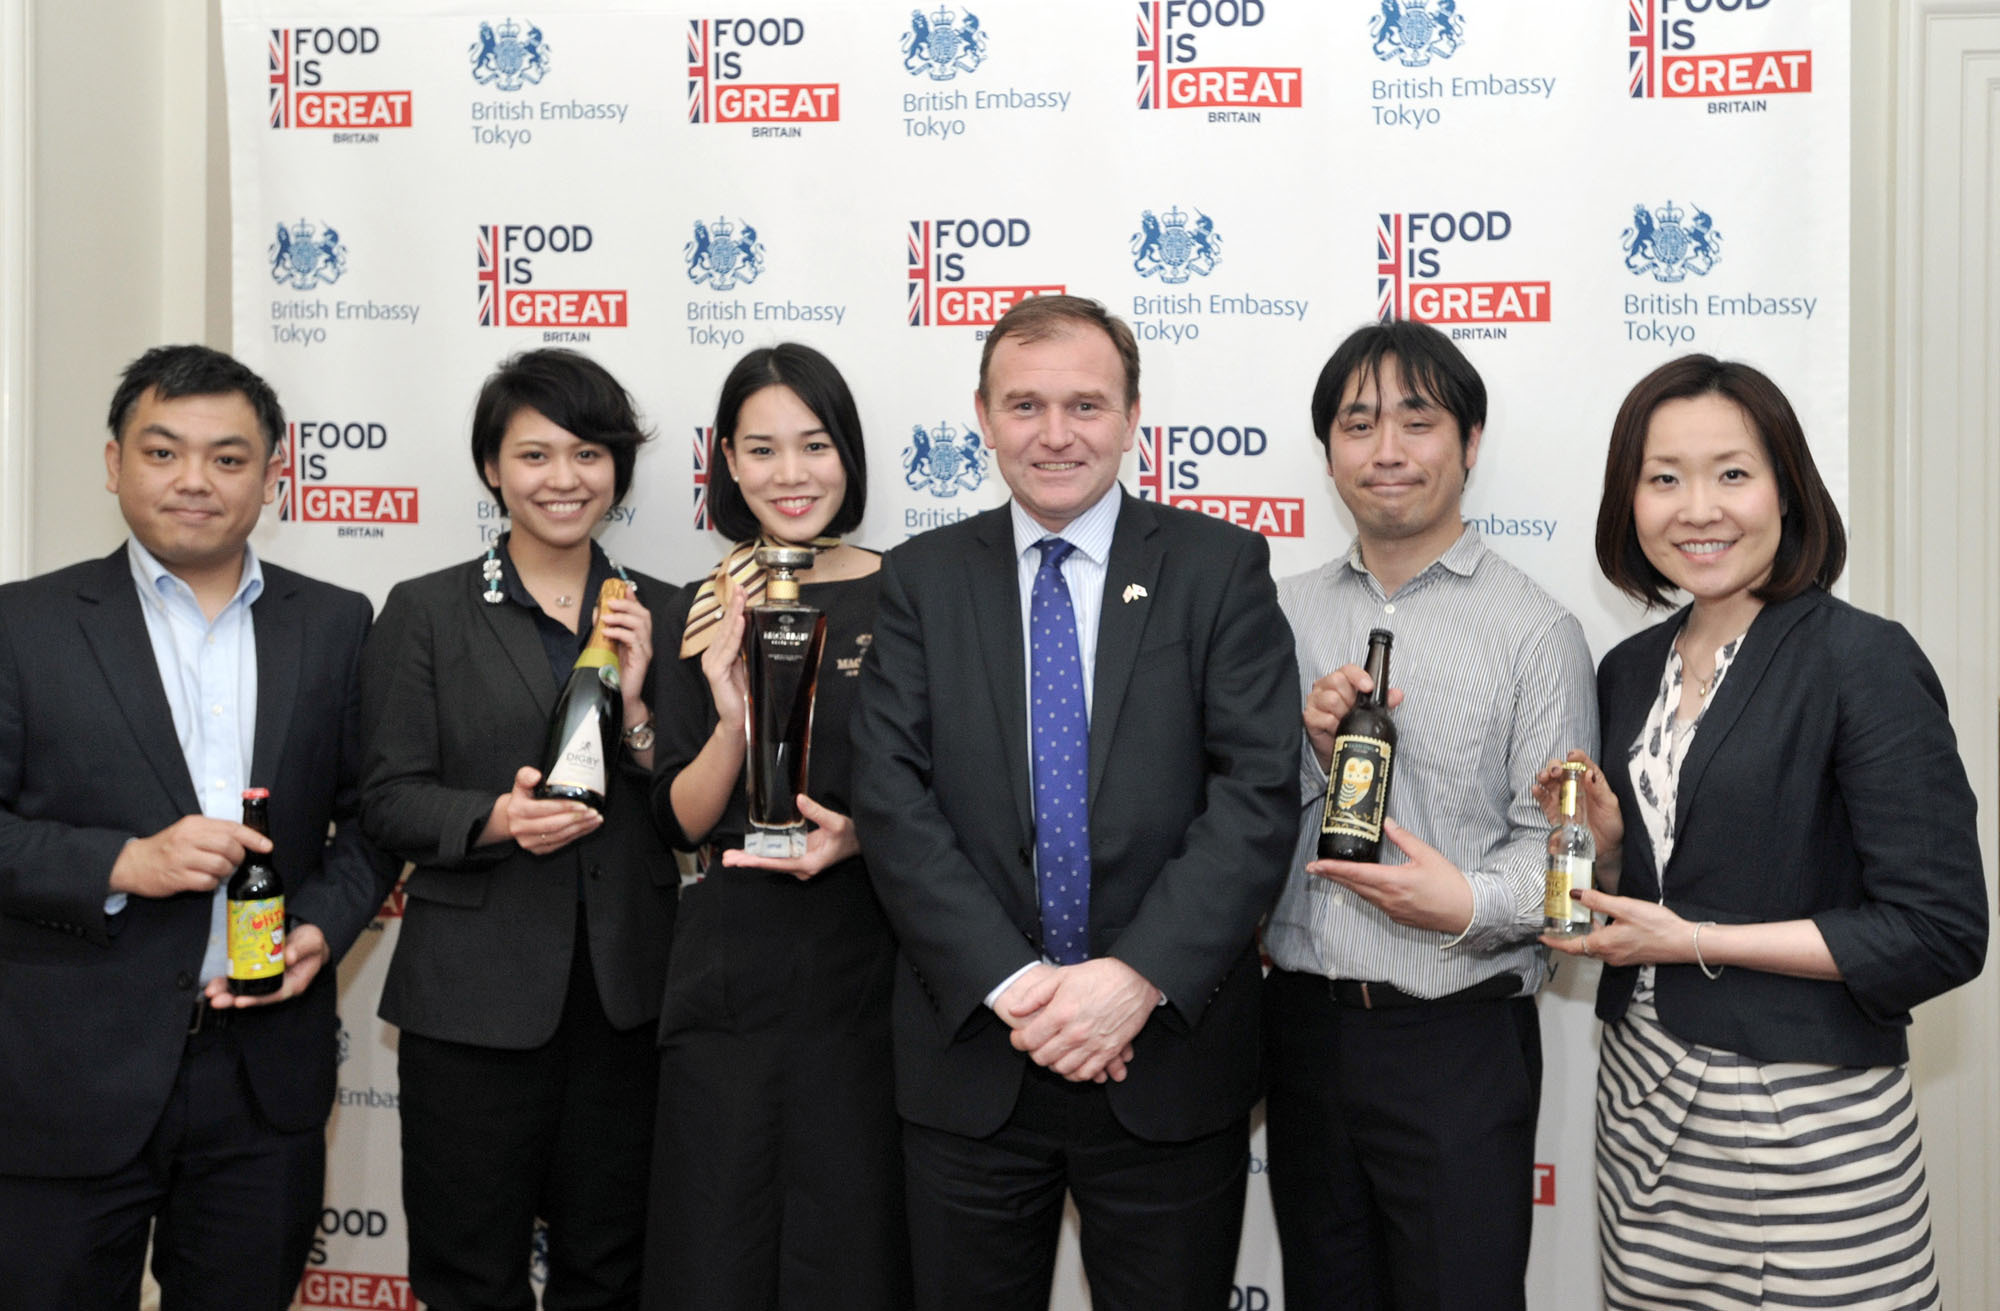 """British Minister of State at the Department for the Environment, Food and Rural Affairs George Eustice (third from right) poses with suppliers representing, from left, Tiny Rebel beer; The British Bottle Company wine; Macallan whisky; Perry's cider; and Sipsmith & Fever-tree gin and tonic, at a """"Food is GREAT,"""" pop-up bar at the British embassy in Tokyo on April 22. 